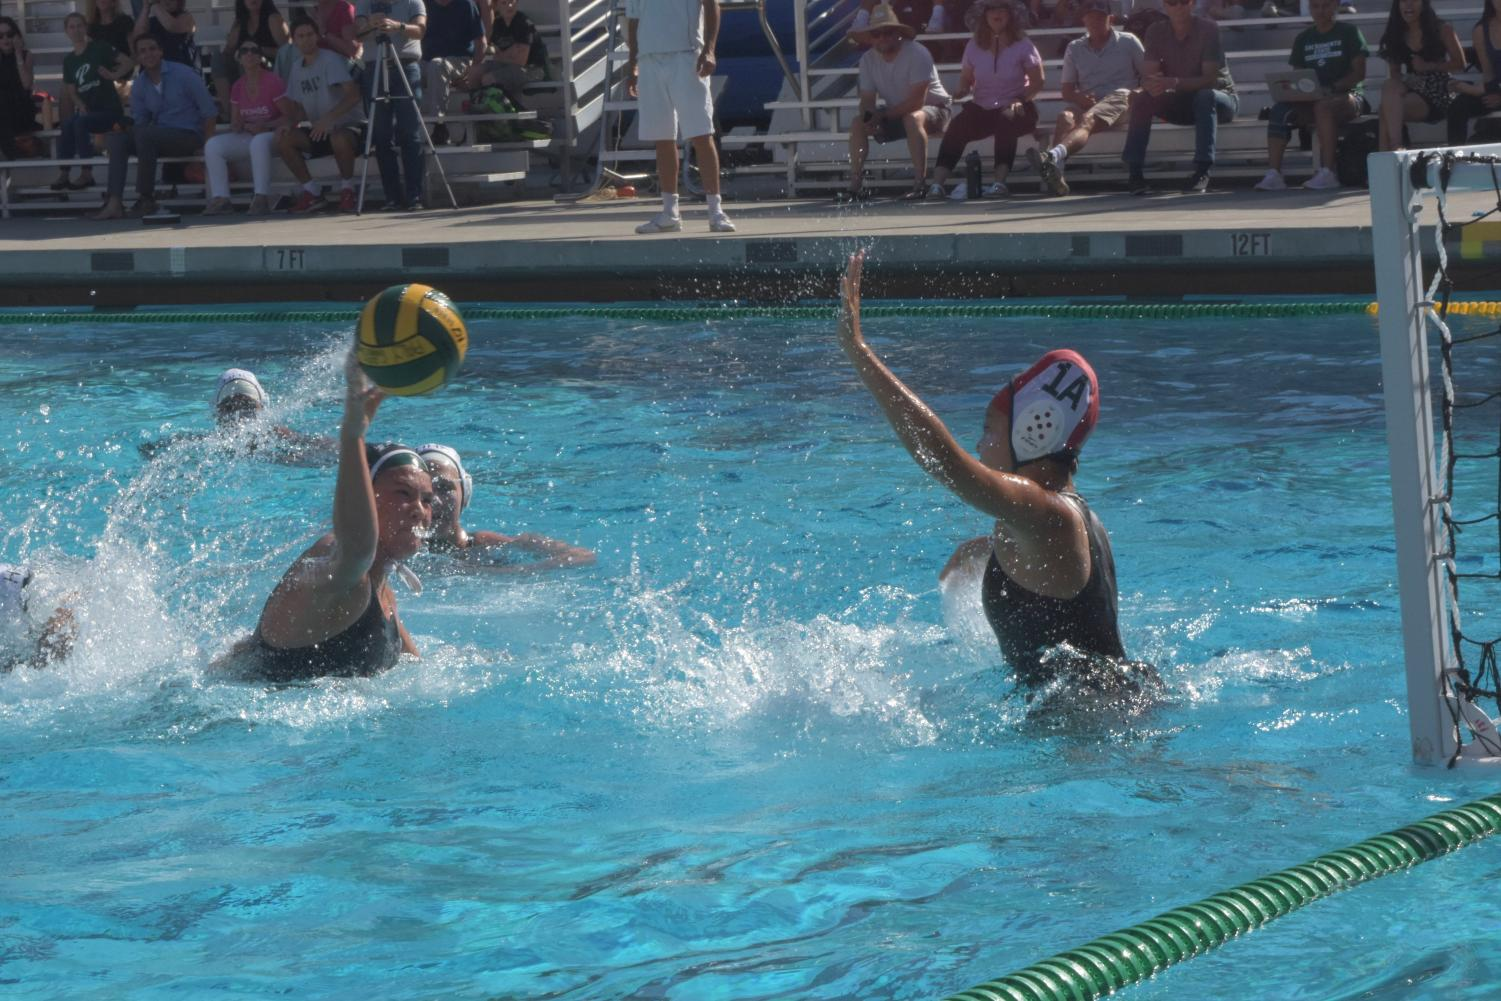 """Junior Hana Erickson takes a shot against the Homestead mustangs goalie. The Palo Alto High School girls water polo team triumphed over the mustangs 11-7, setting a hopeful tone for the rest of the season. """"We've always been the bottom two in our league, so I think this is a really exciting start to our season,"""" Erickson said."""